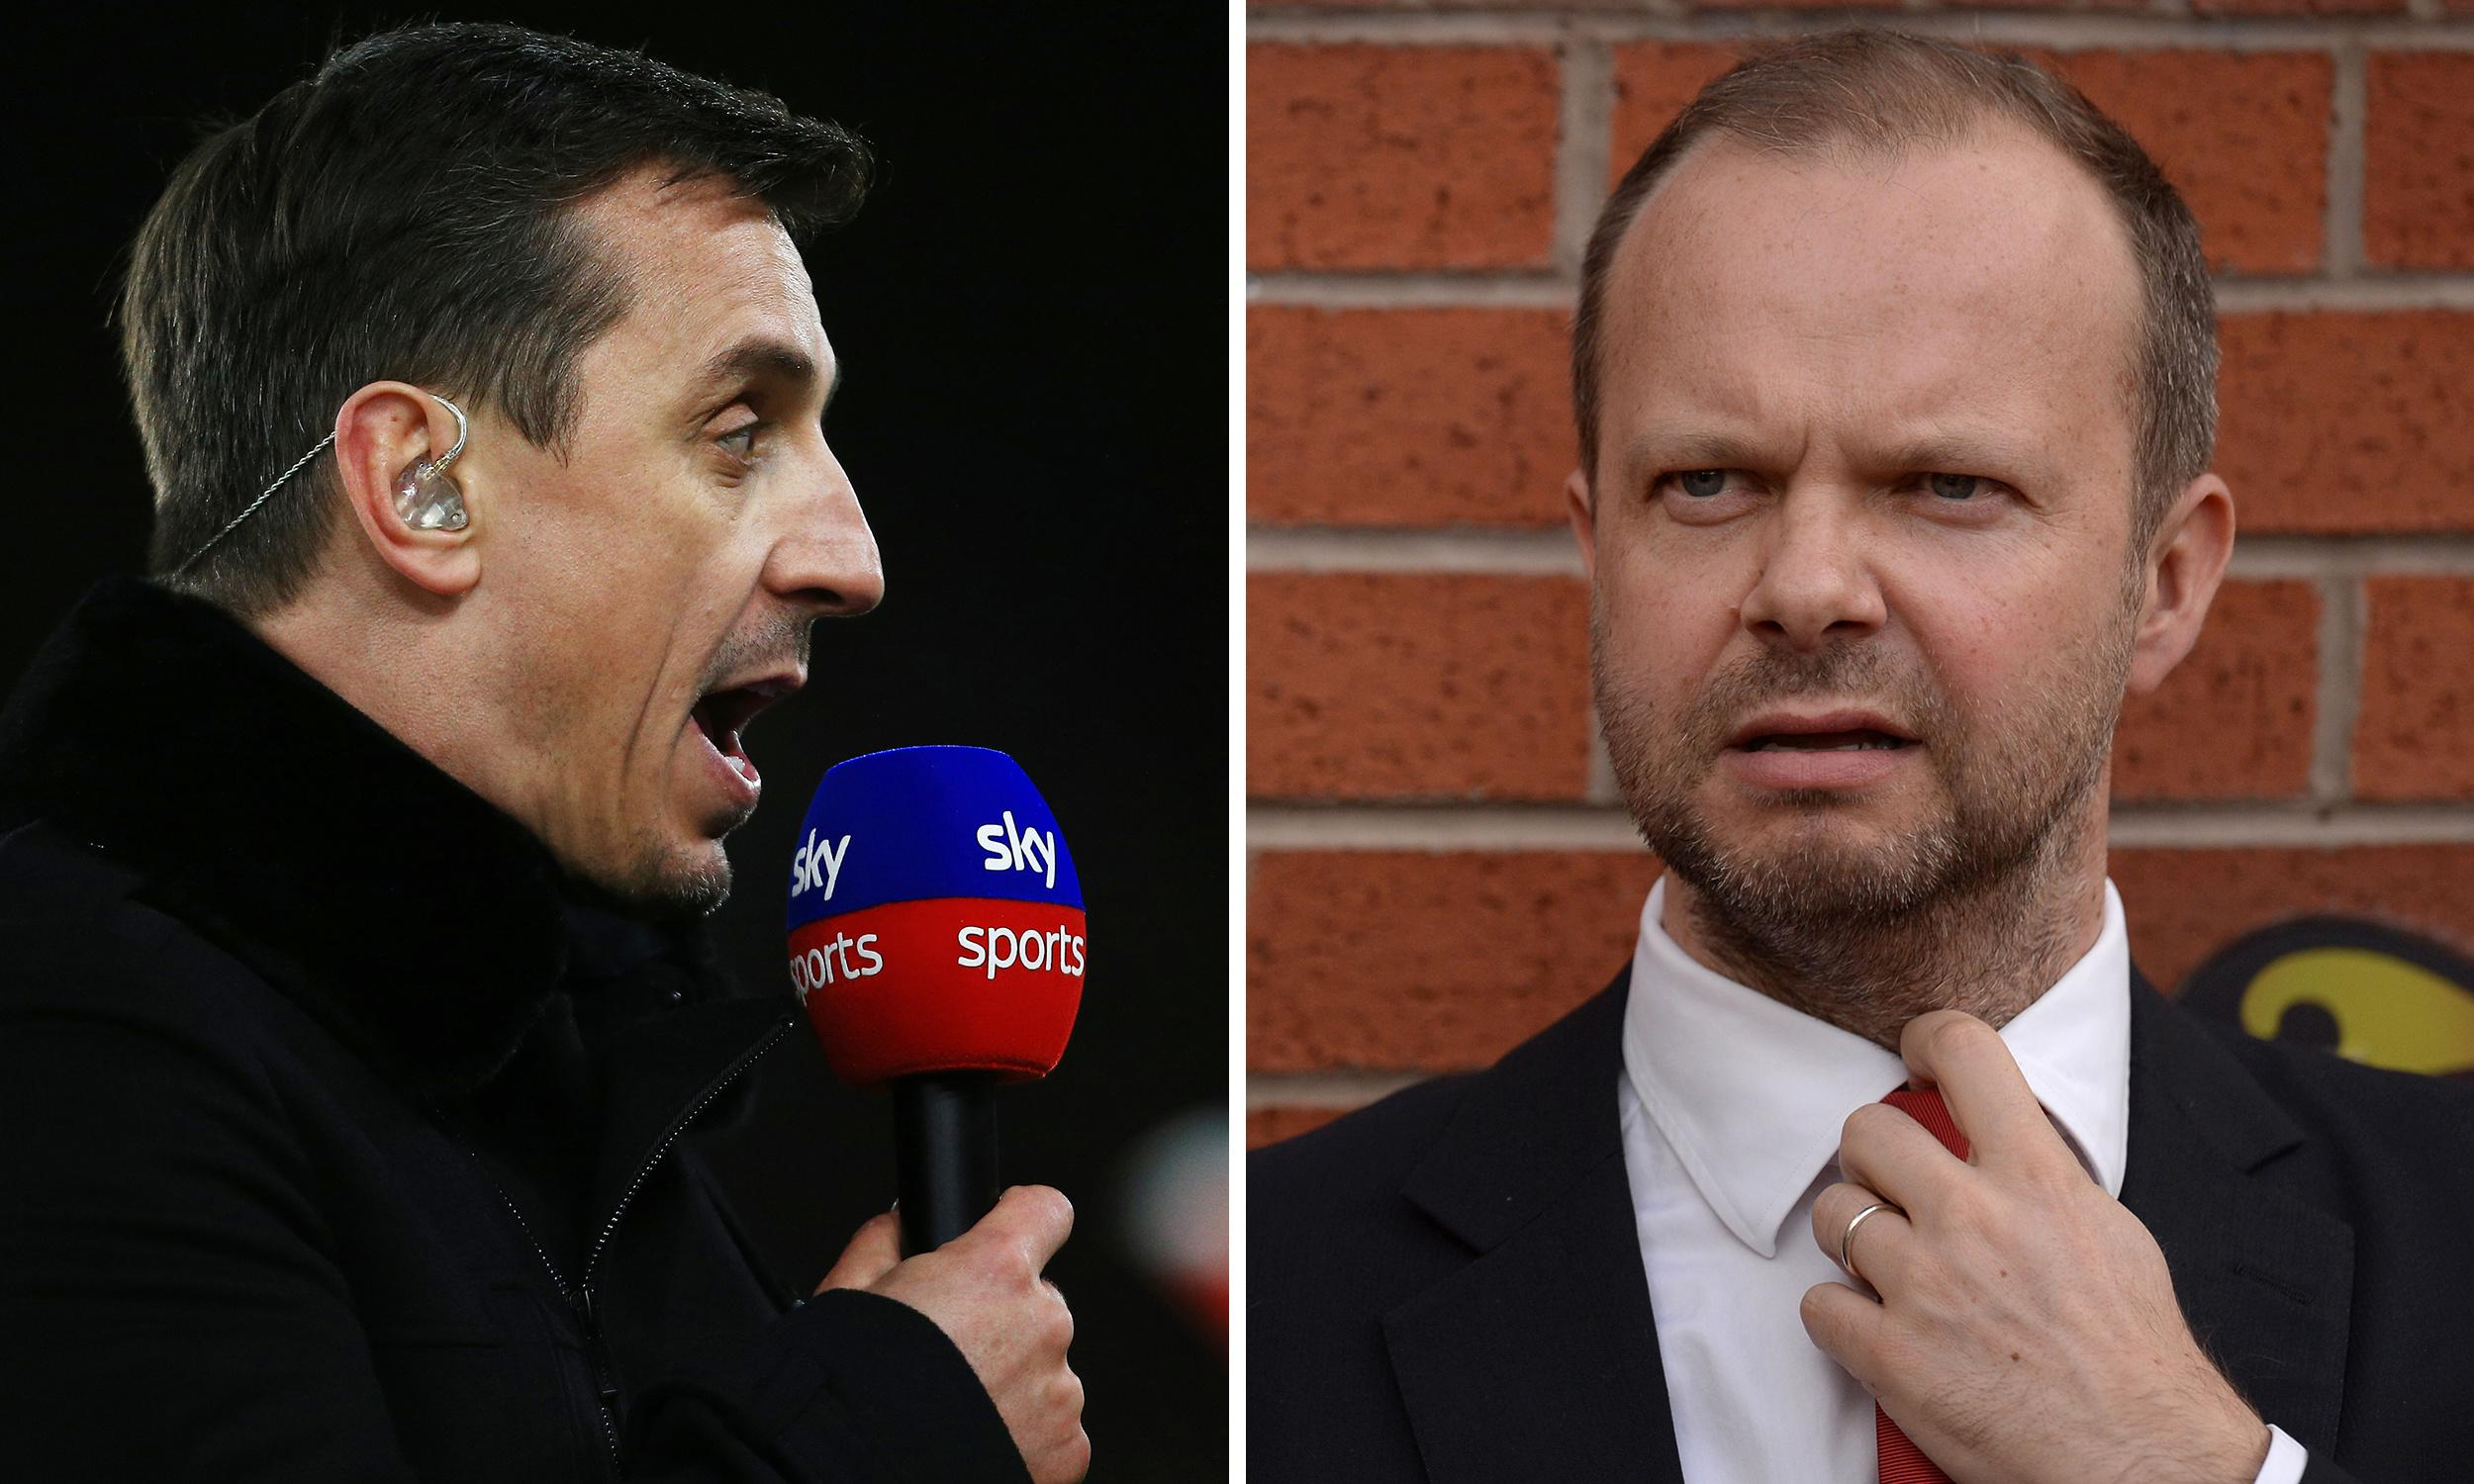 Gary Neville rails at Ed Woodward over Manchester United 'mess'